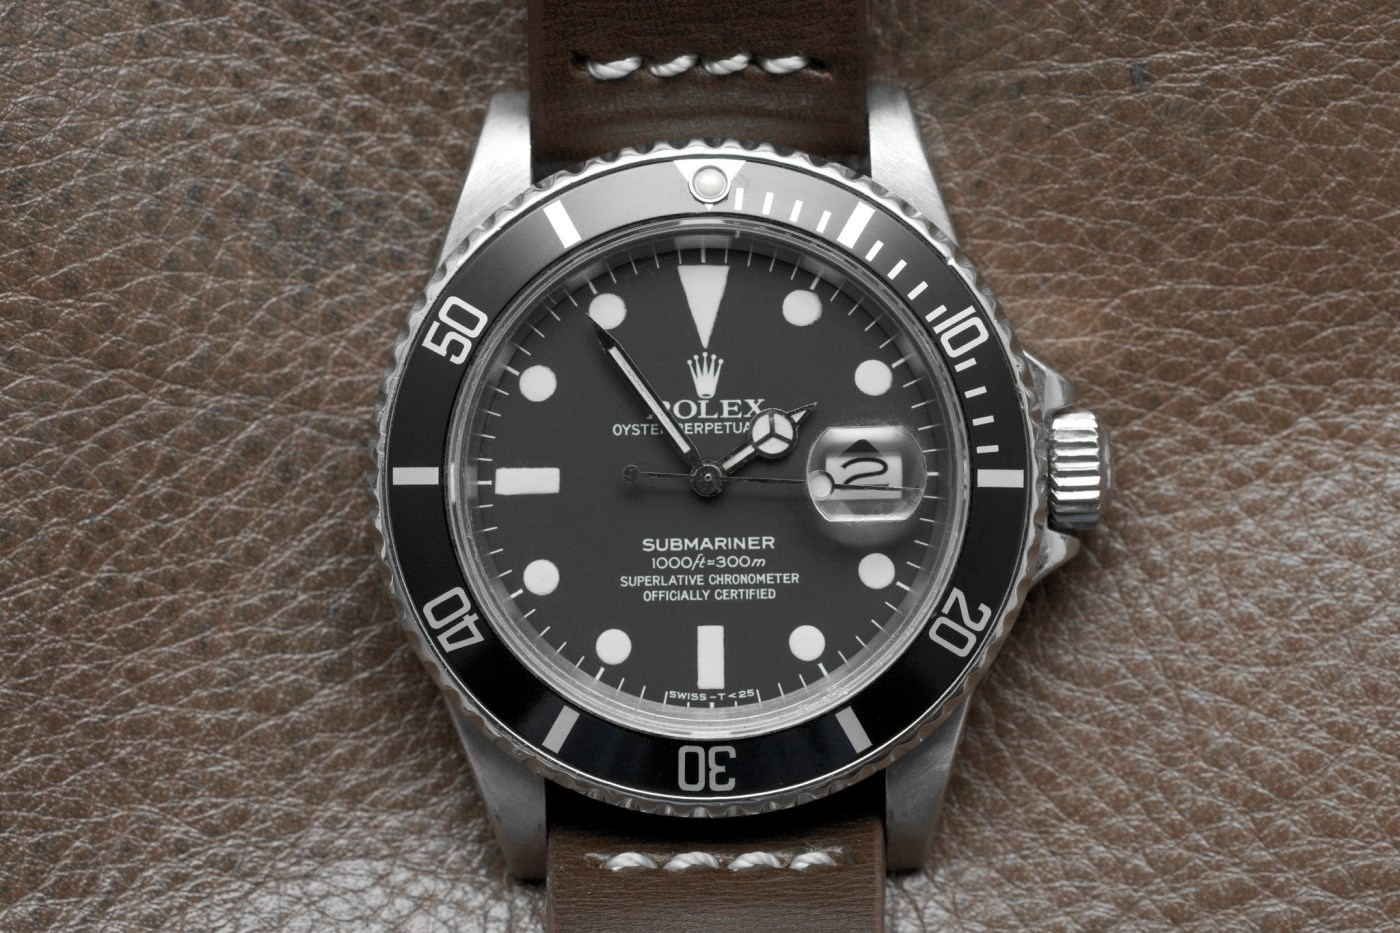 Rolex Submariner 16800 side view